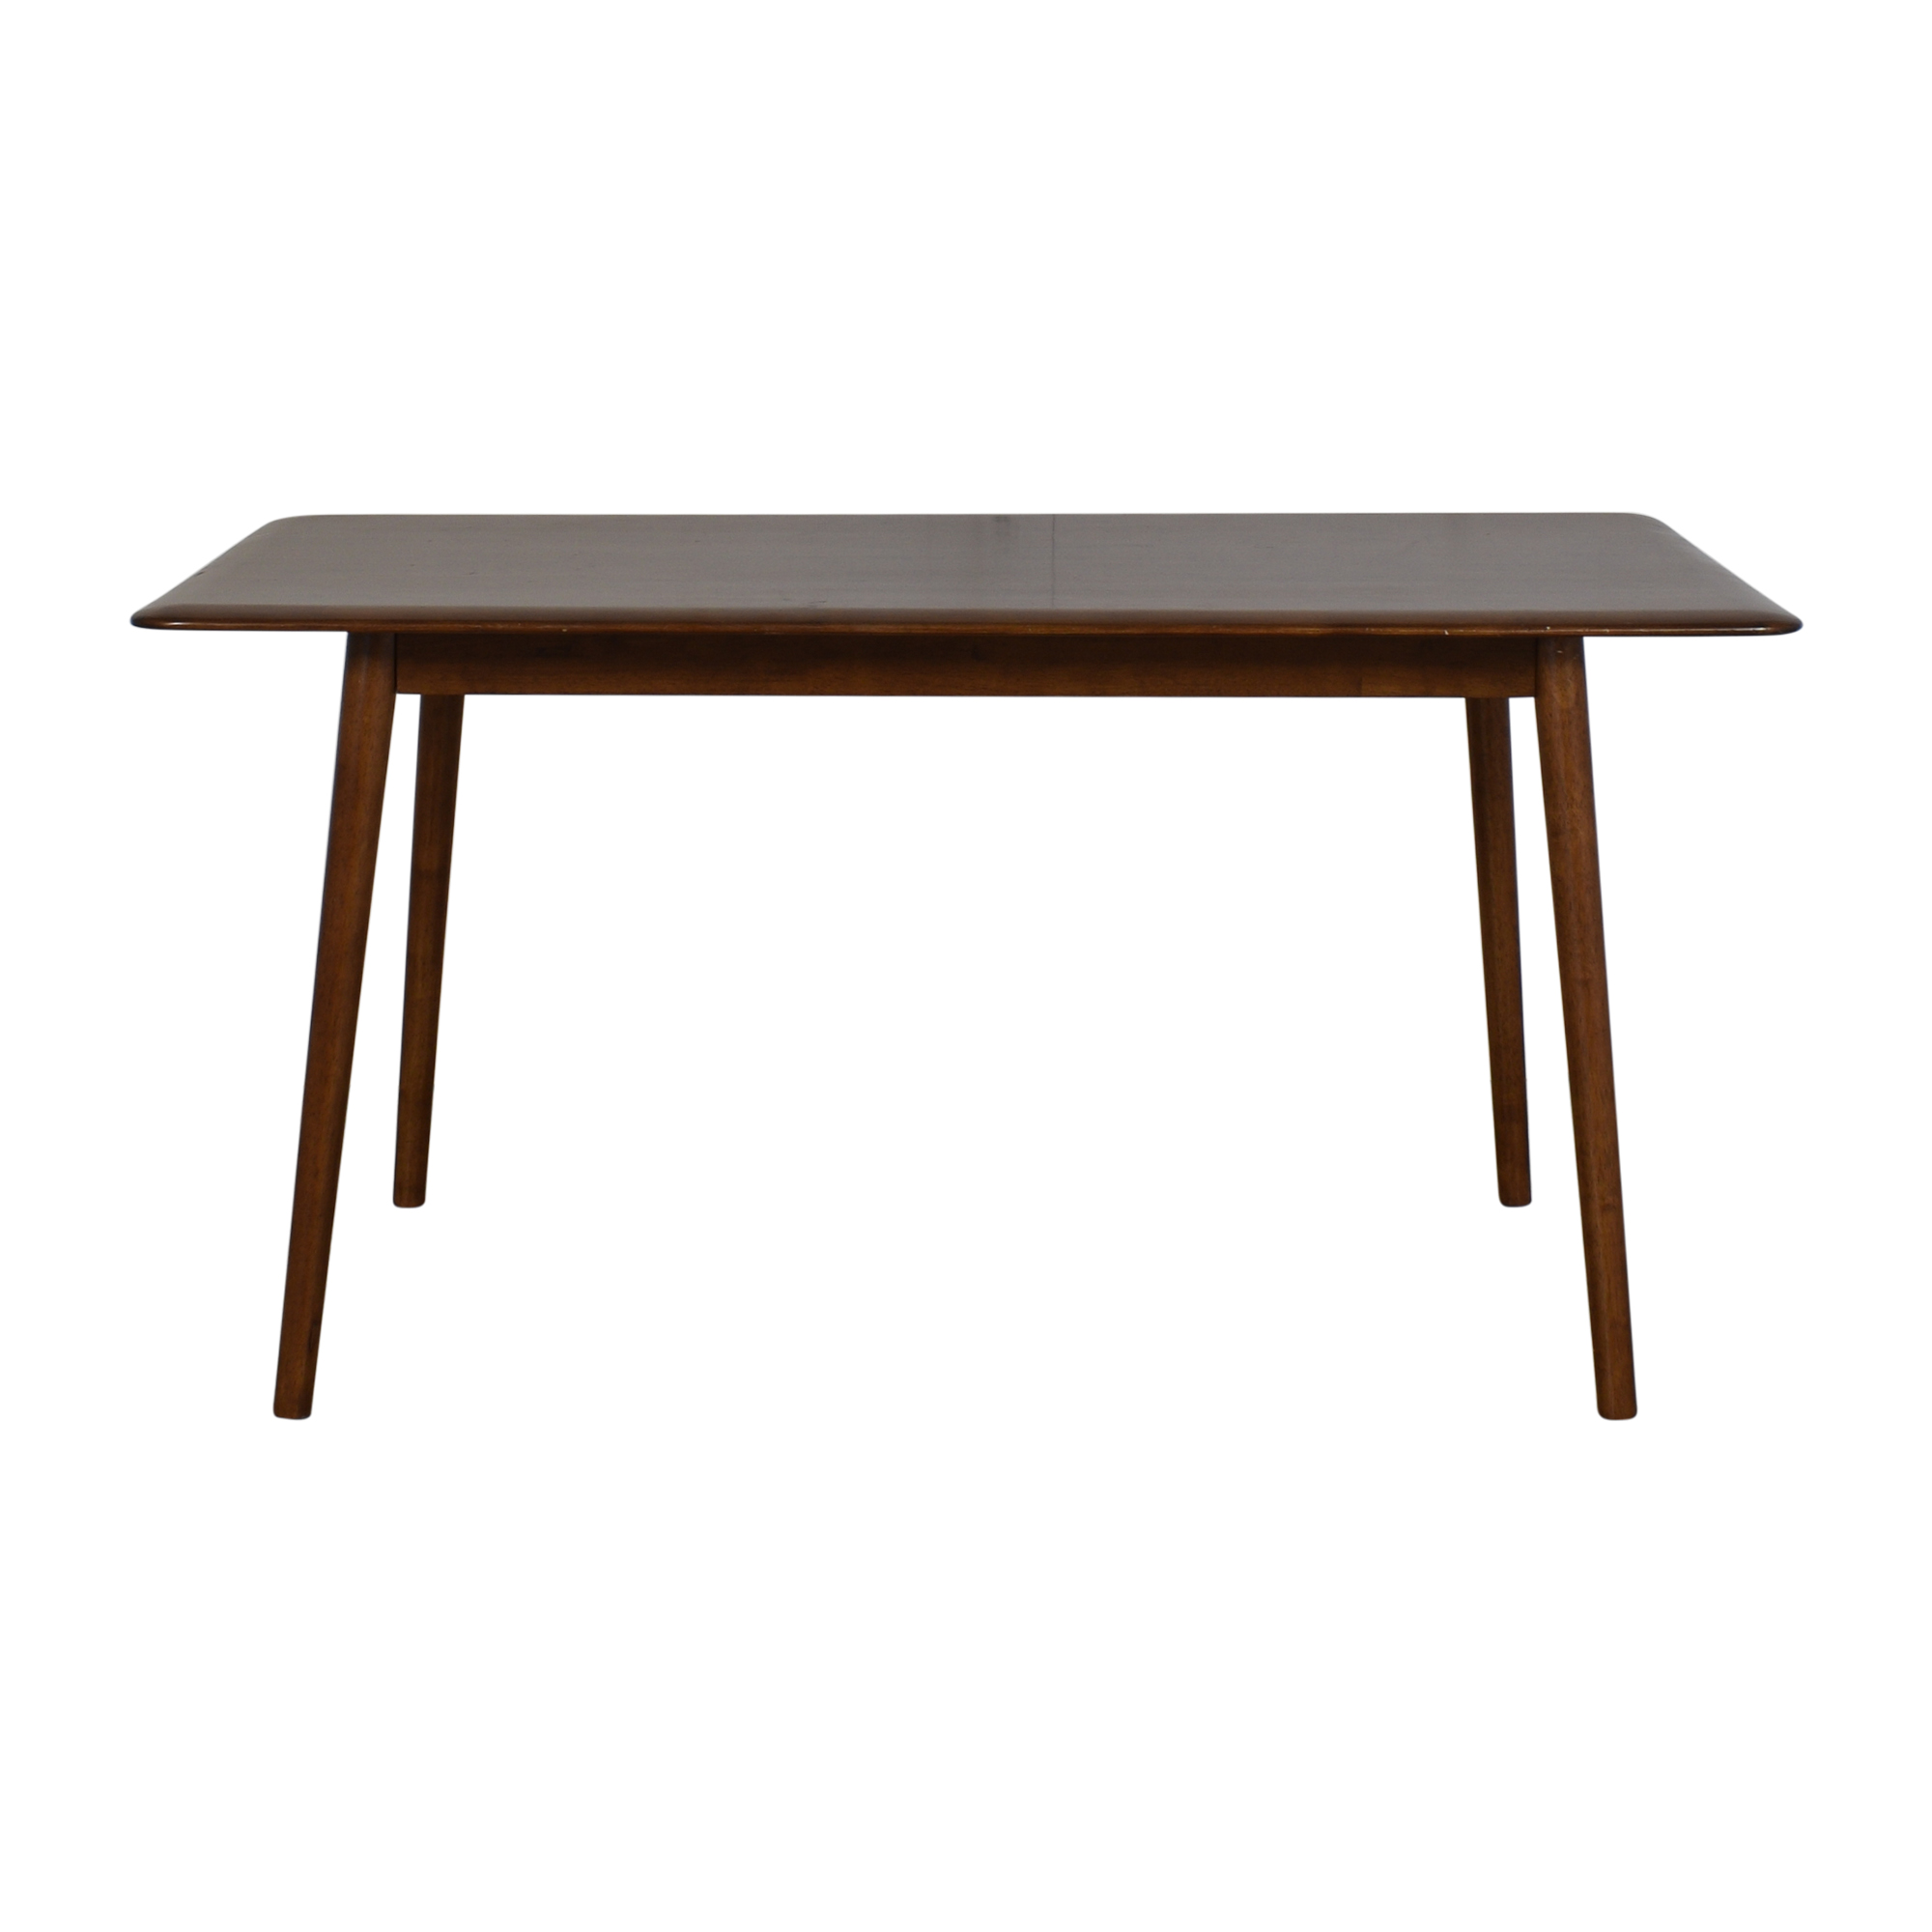 West Elm West Elm Lena Mid-Century Dining Table nyc